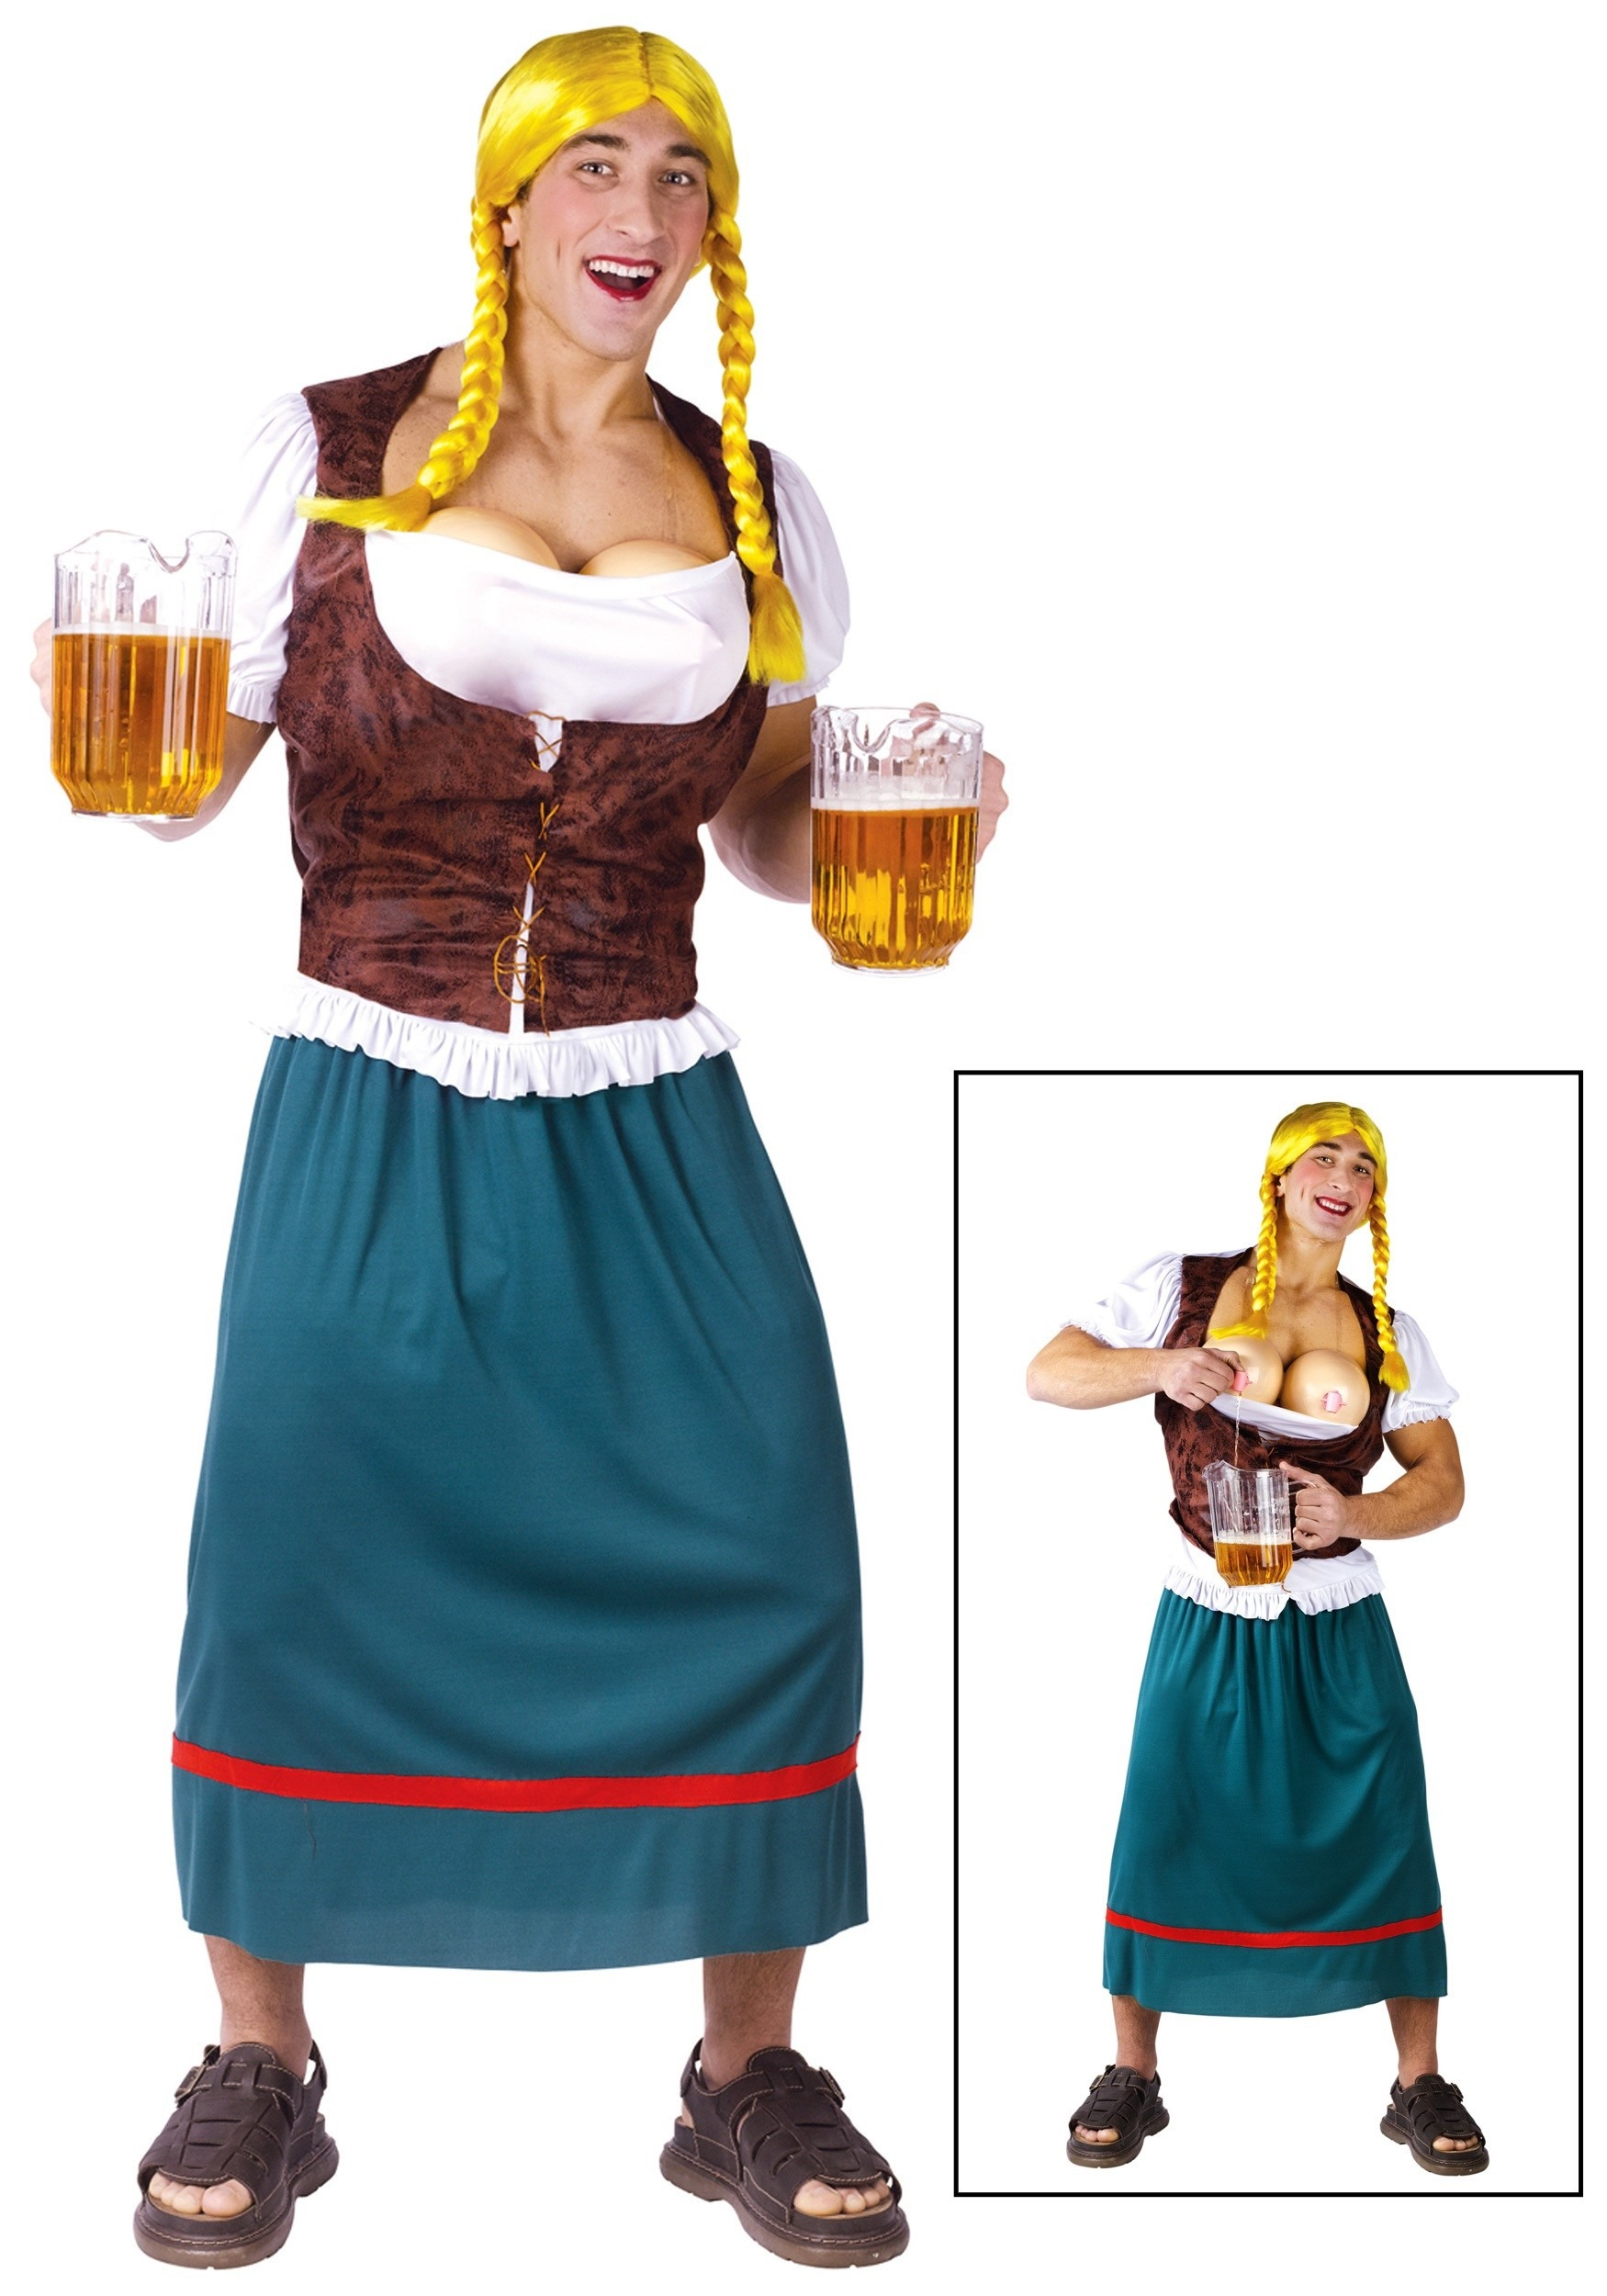 Mens German Beer Babe Costume  sc 1 st  Halloween Costume & Mens German Beer Babe Costume - Funny Halloween Costumes for Adults